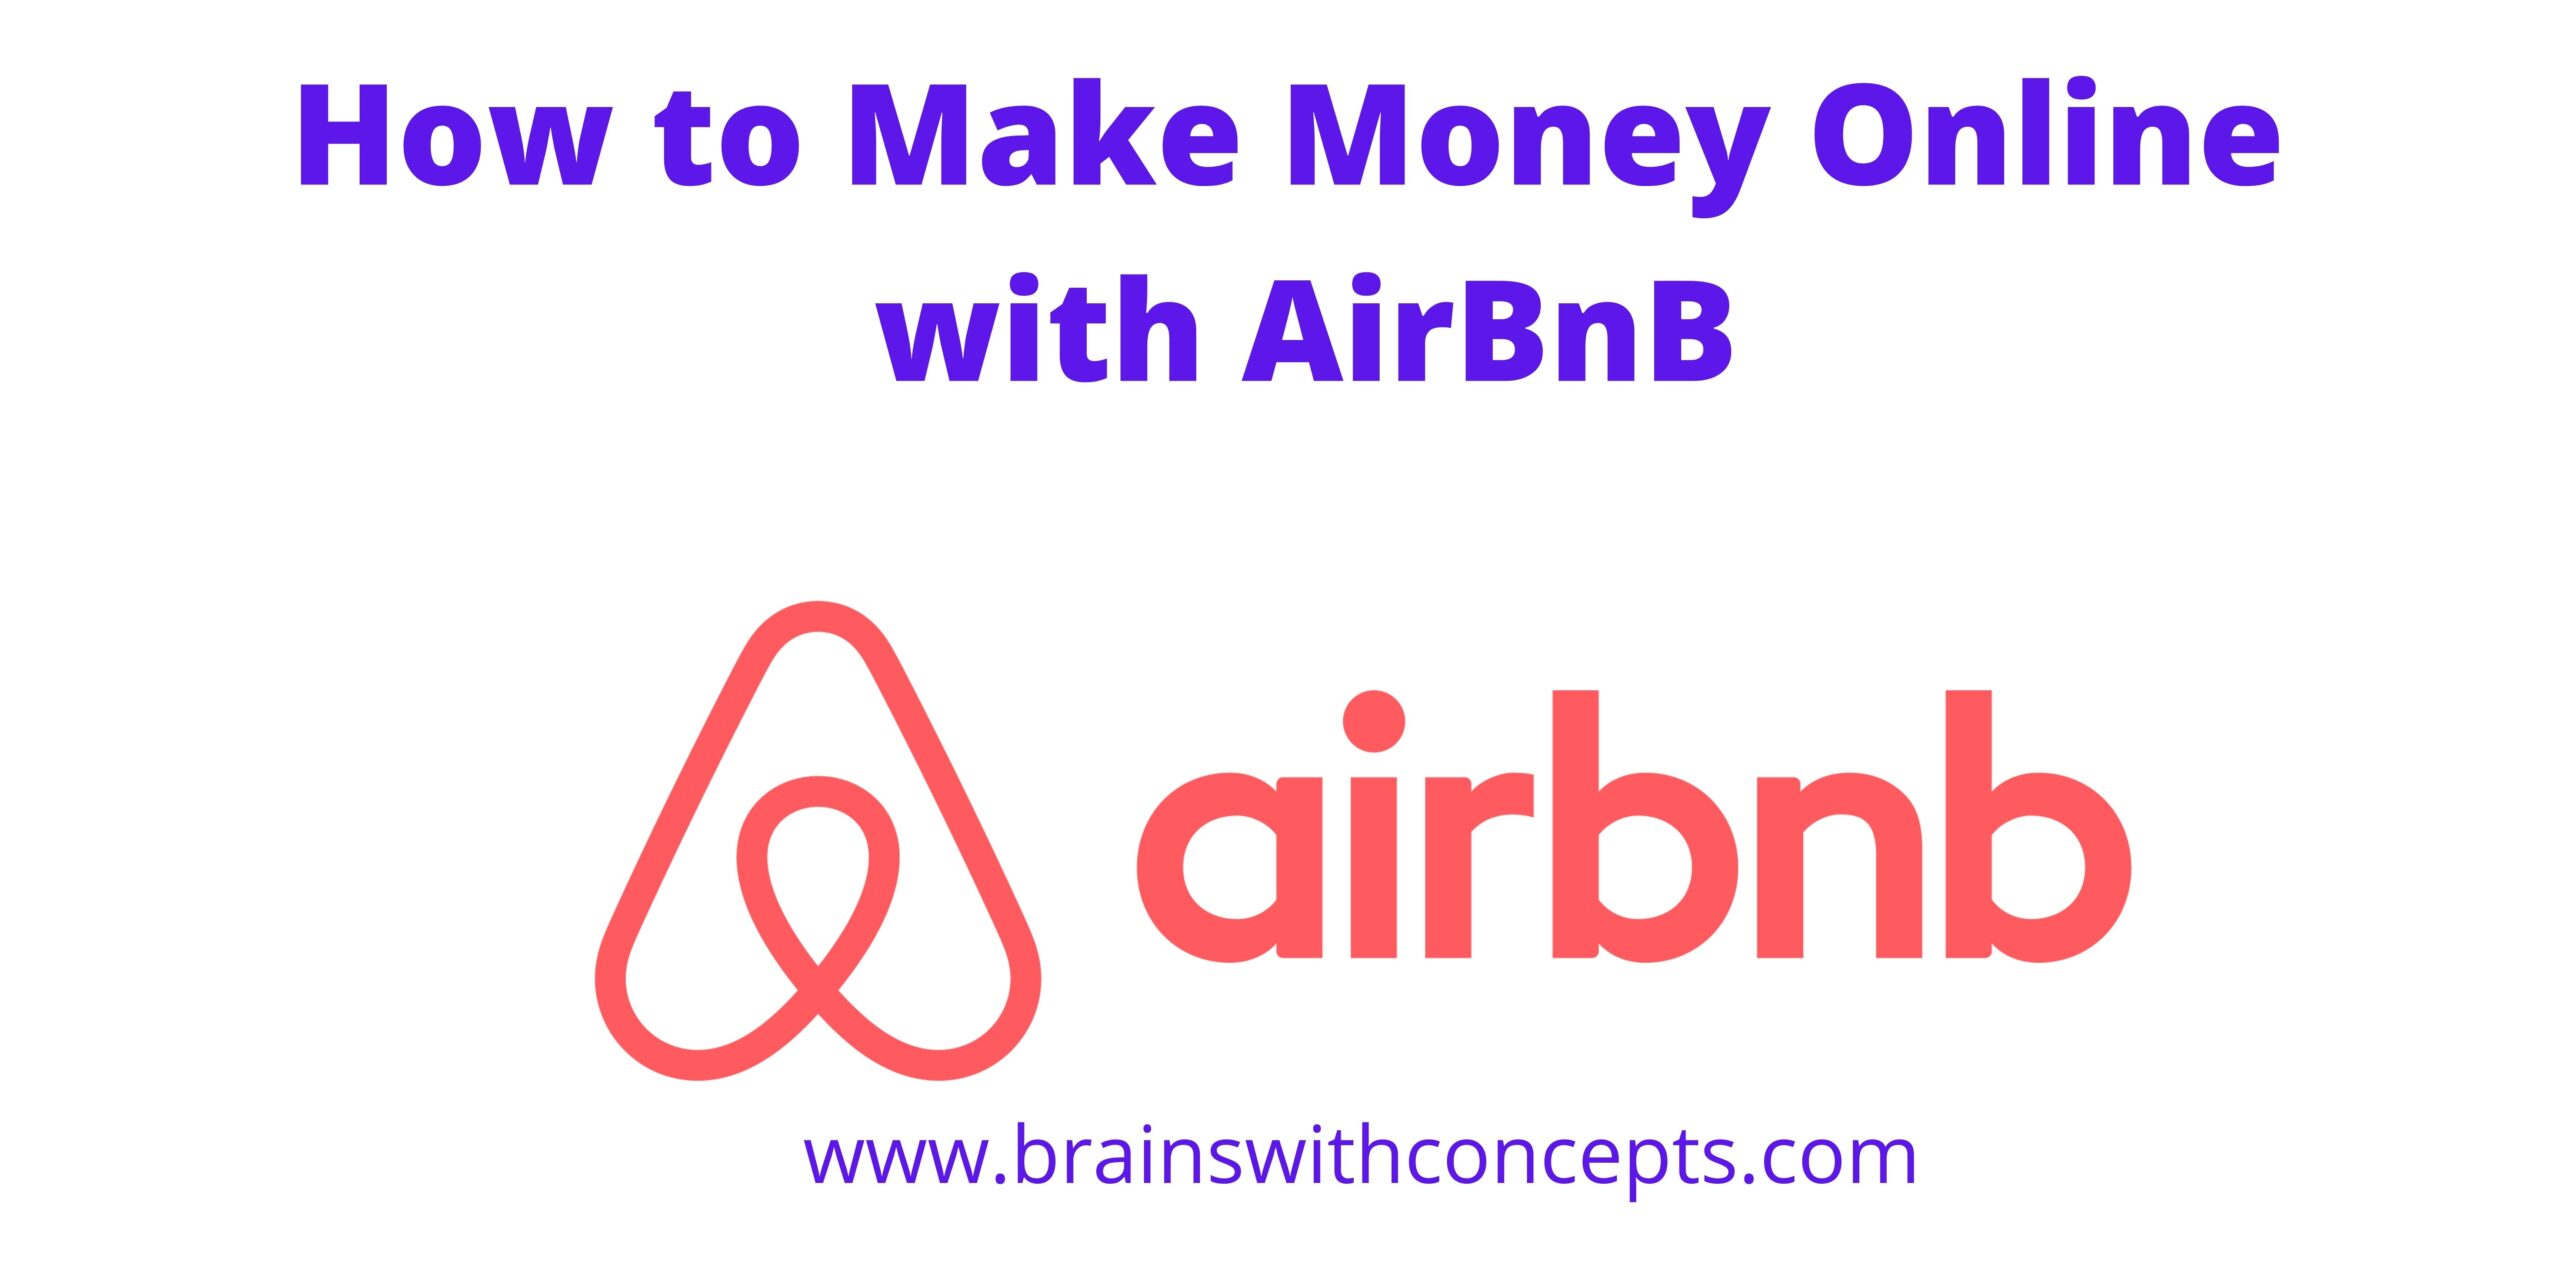 How to Make Money Online in Kenya With Airbnb